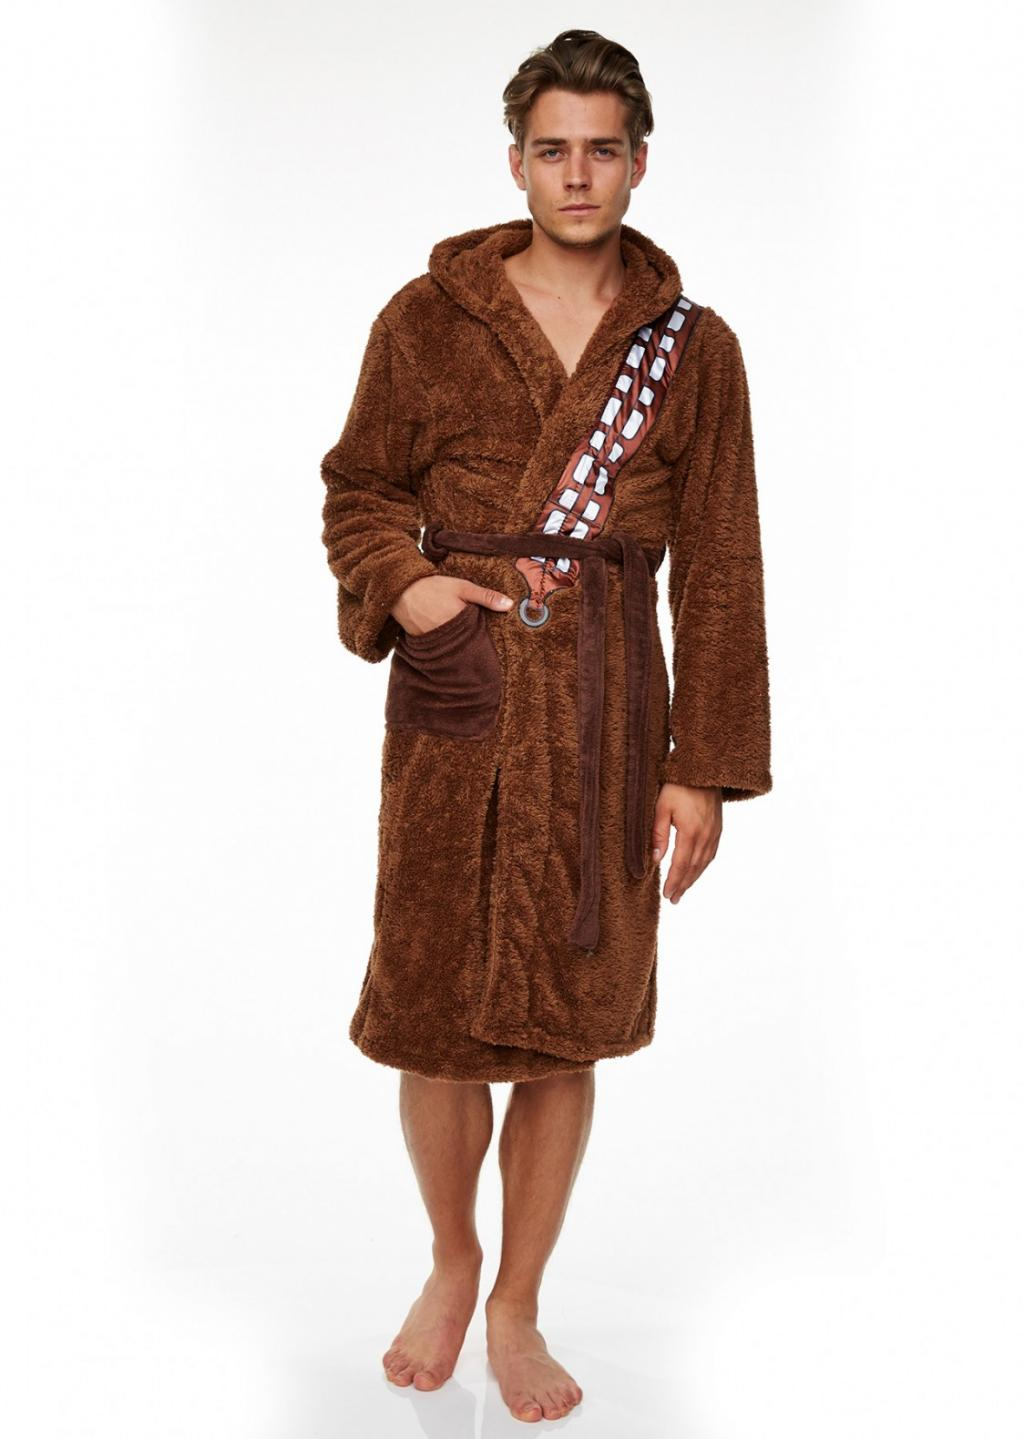 STAR WARS - Peignoir - Chewbacca - Adulte - Taille Unique